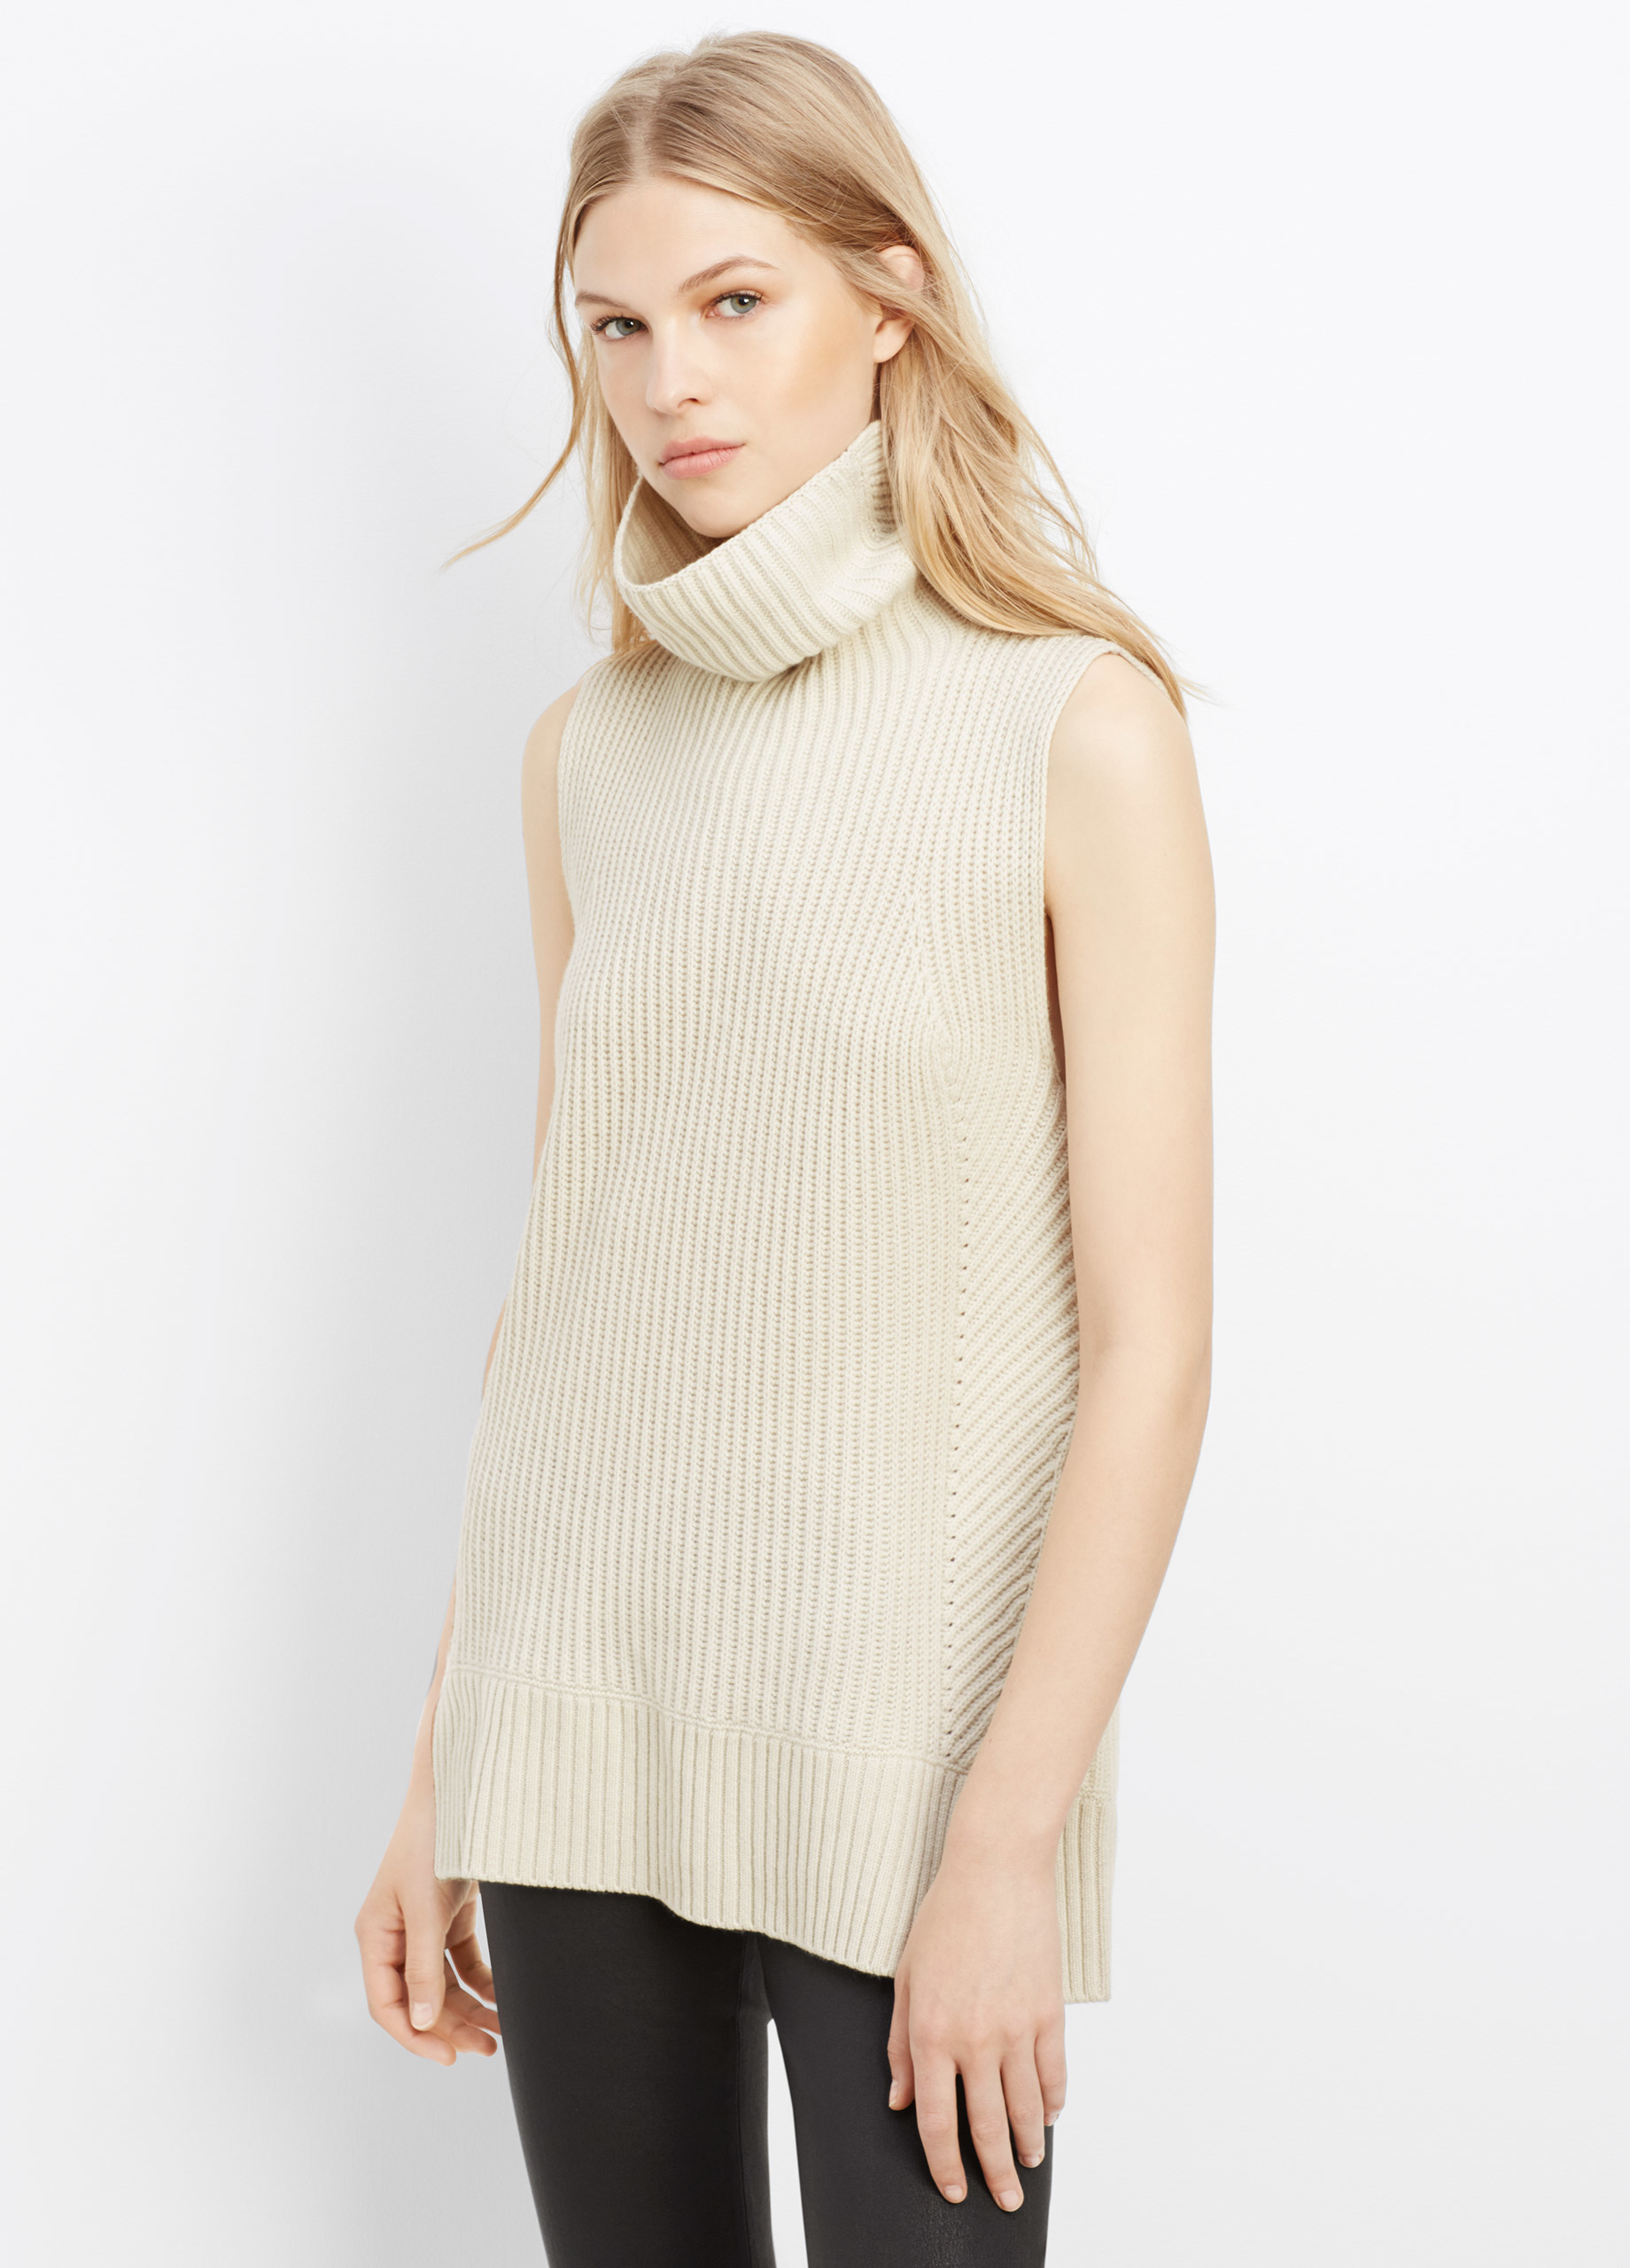 Buy the latest turtleneck sweater sleeveless cheap shop fashion style with free shipping, and check out our daily updated new arrival turtleneck sweater sleeveless at ragabjv.gq